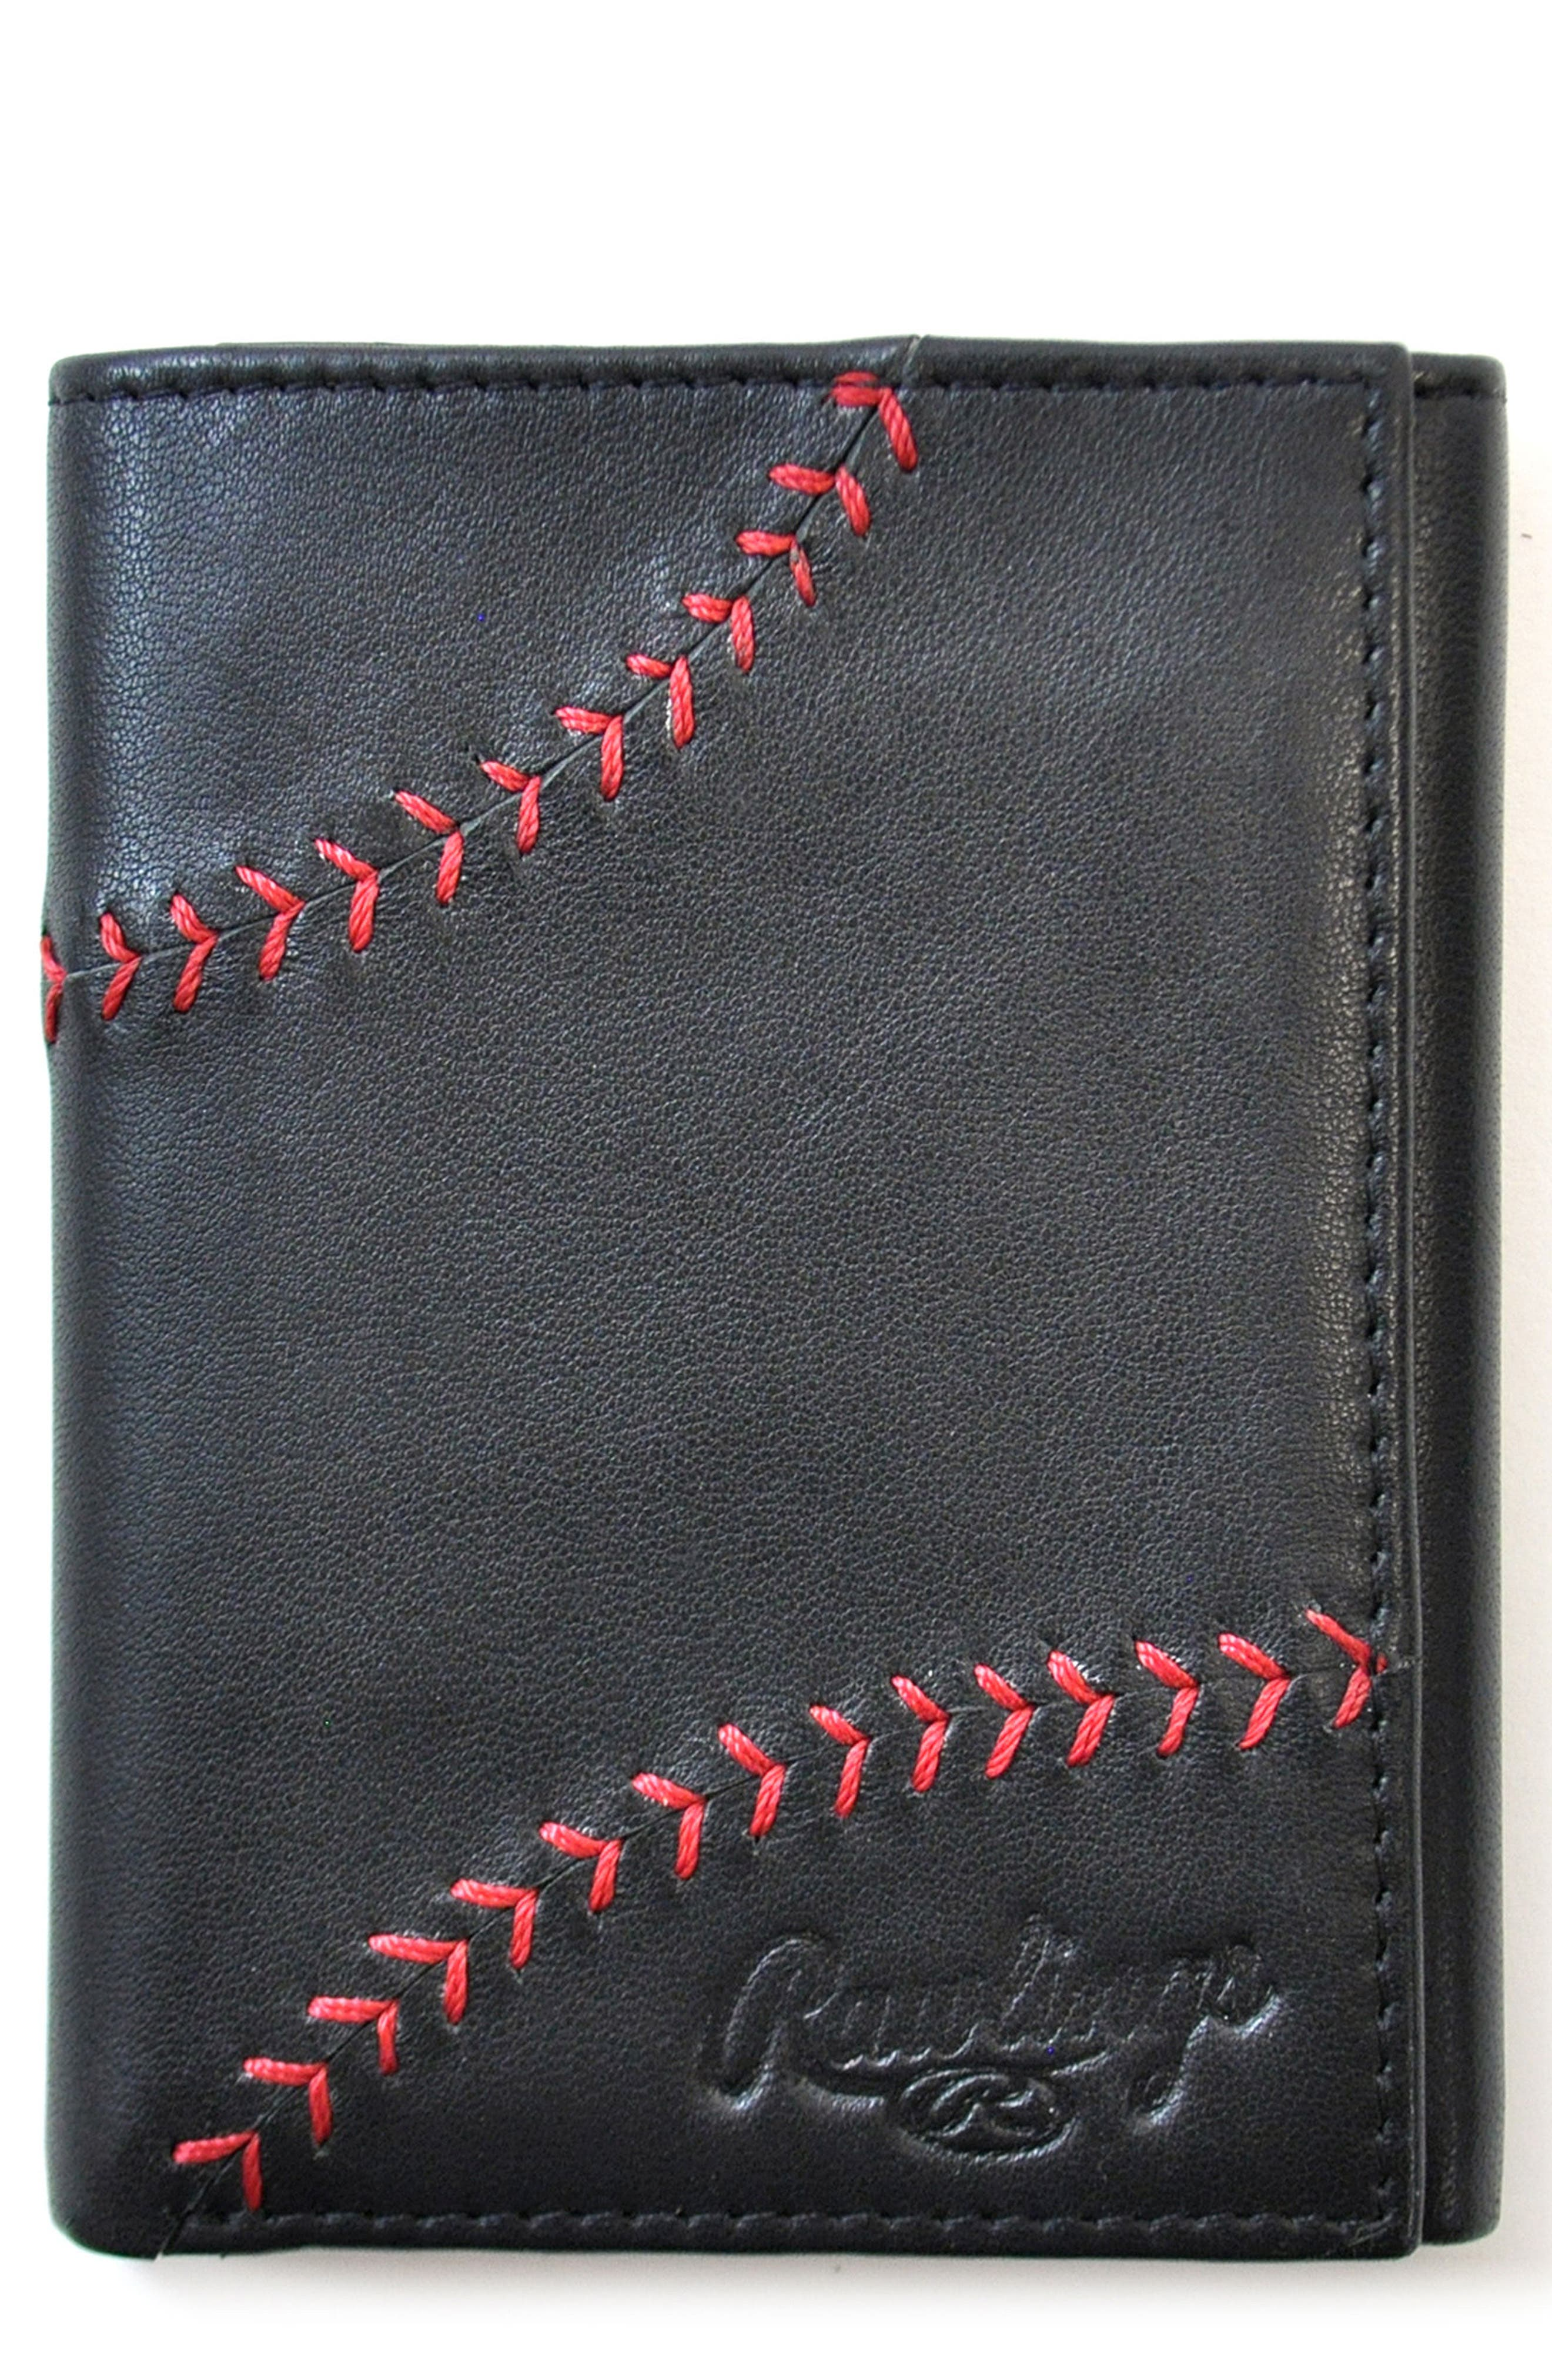 Baseball Stitch Leather Trifold Wallet,                             Alternate thumbnail 2, color,                             001